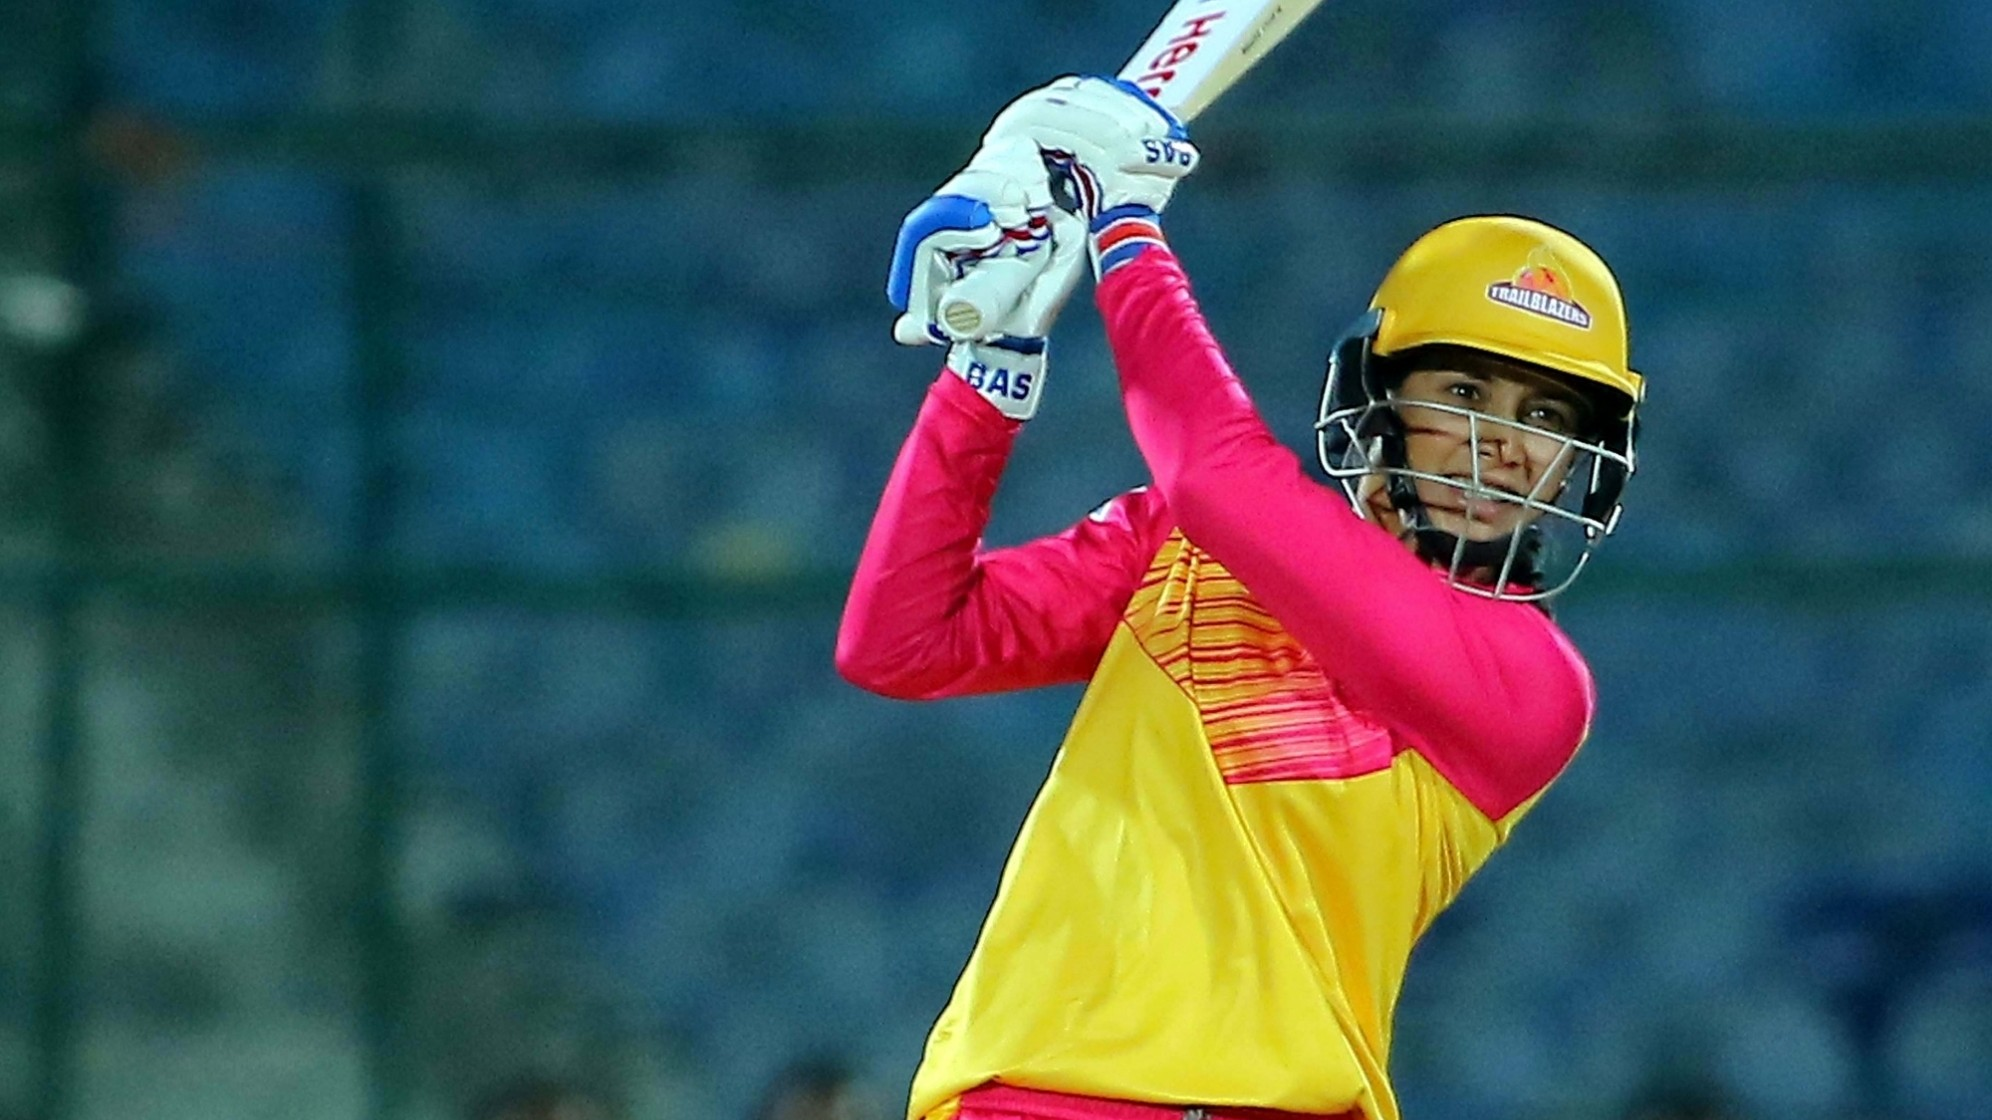 WIPL 2019: Smriti Mandhana stresses on fitness to improve strike-rate in women's cricket